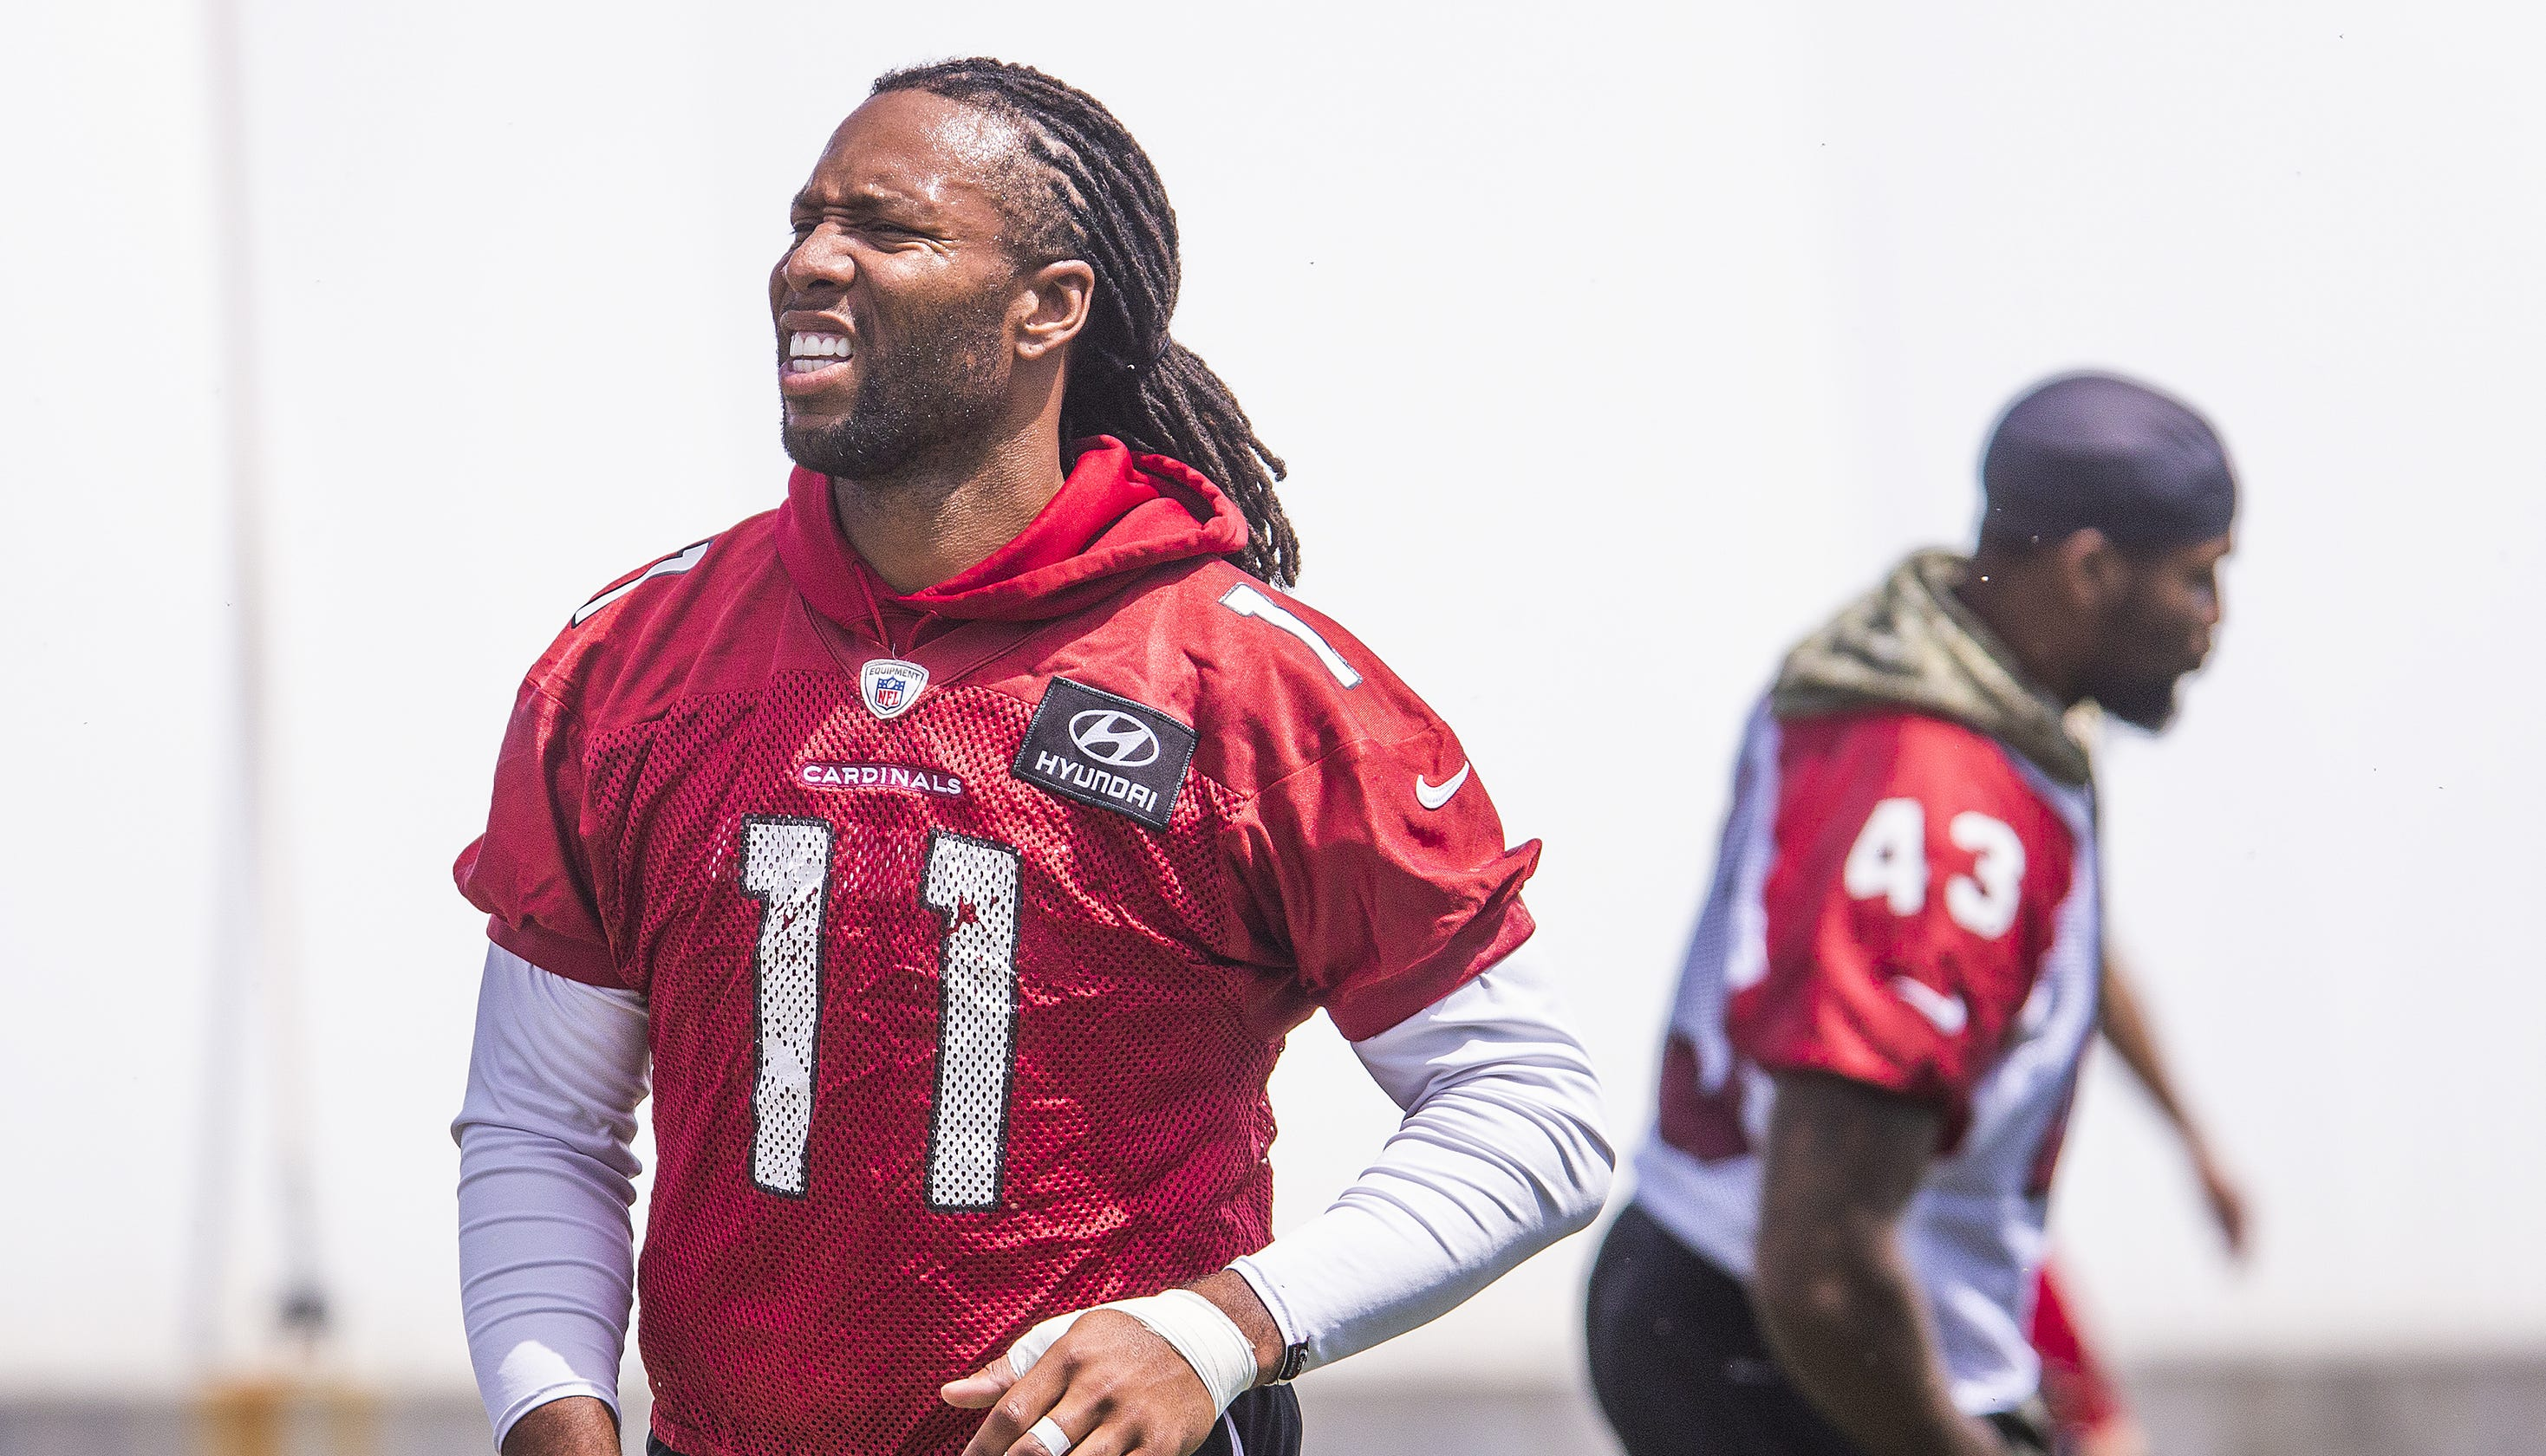 98a19f0c153 ESPN's Max Kellerman questions Larry Fitzgerald's credentials for the NFL  Hall of Fame